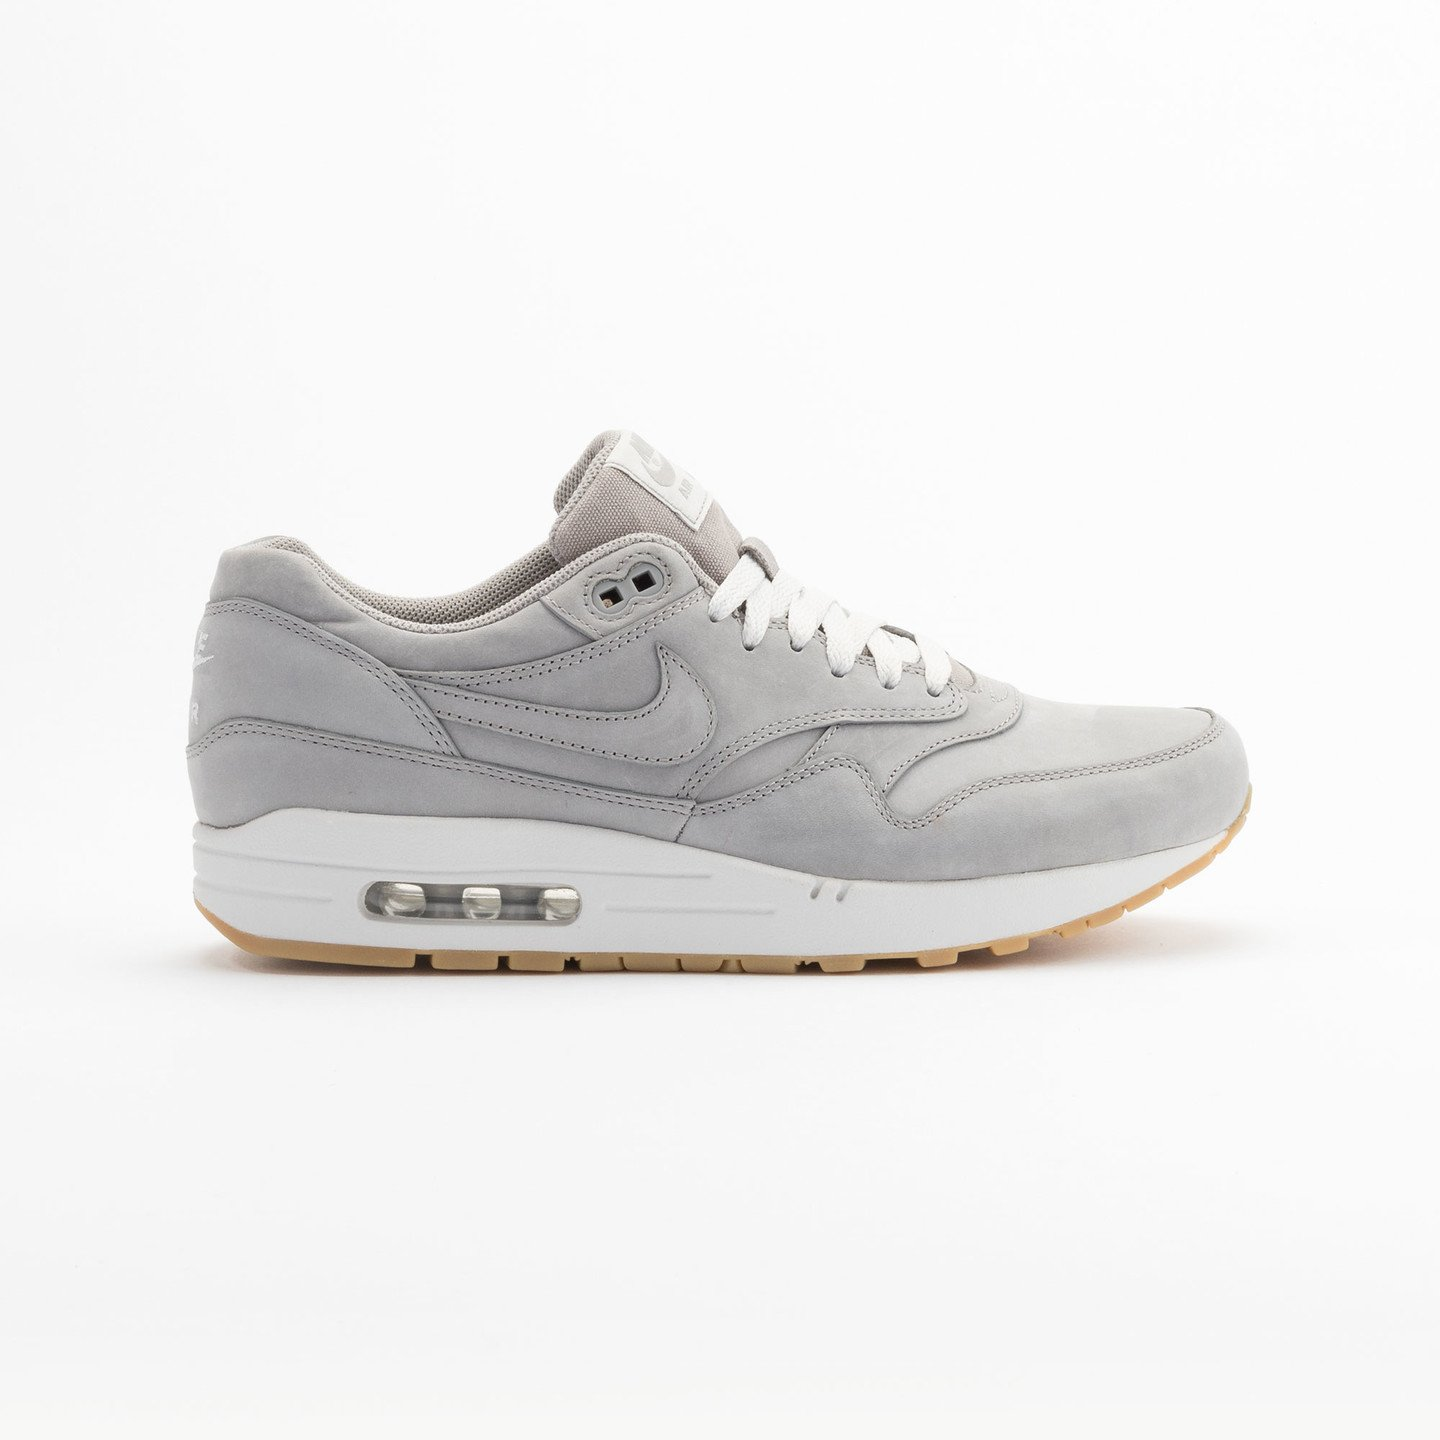 Nike Air Max Leather Premium Medium Grey 705282-005-47